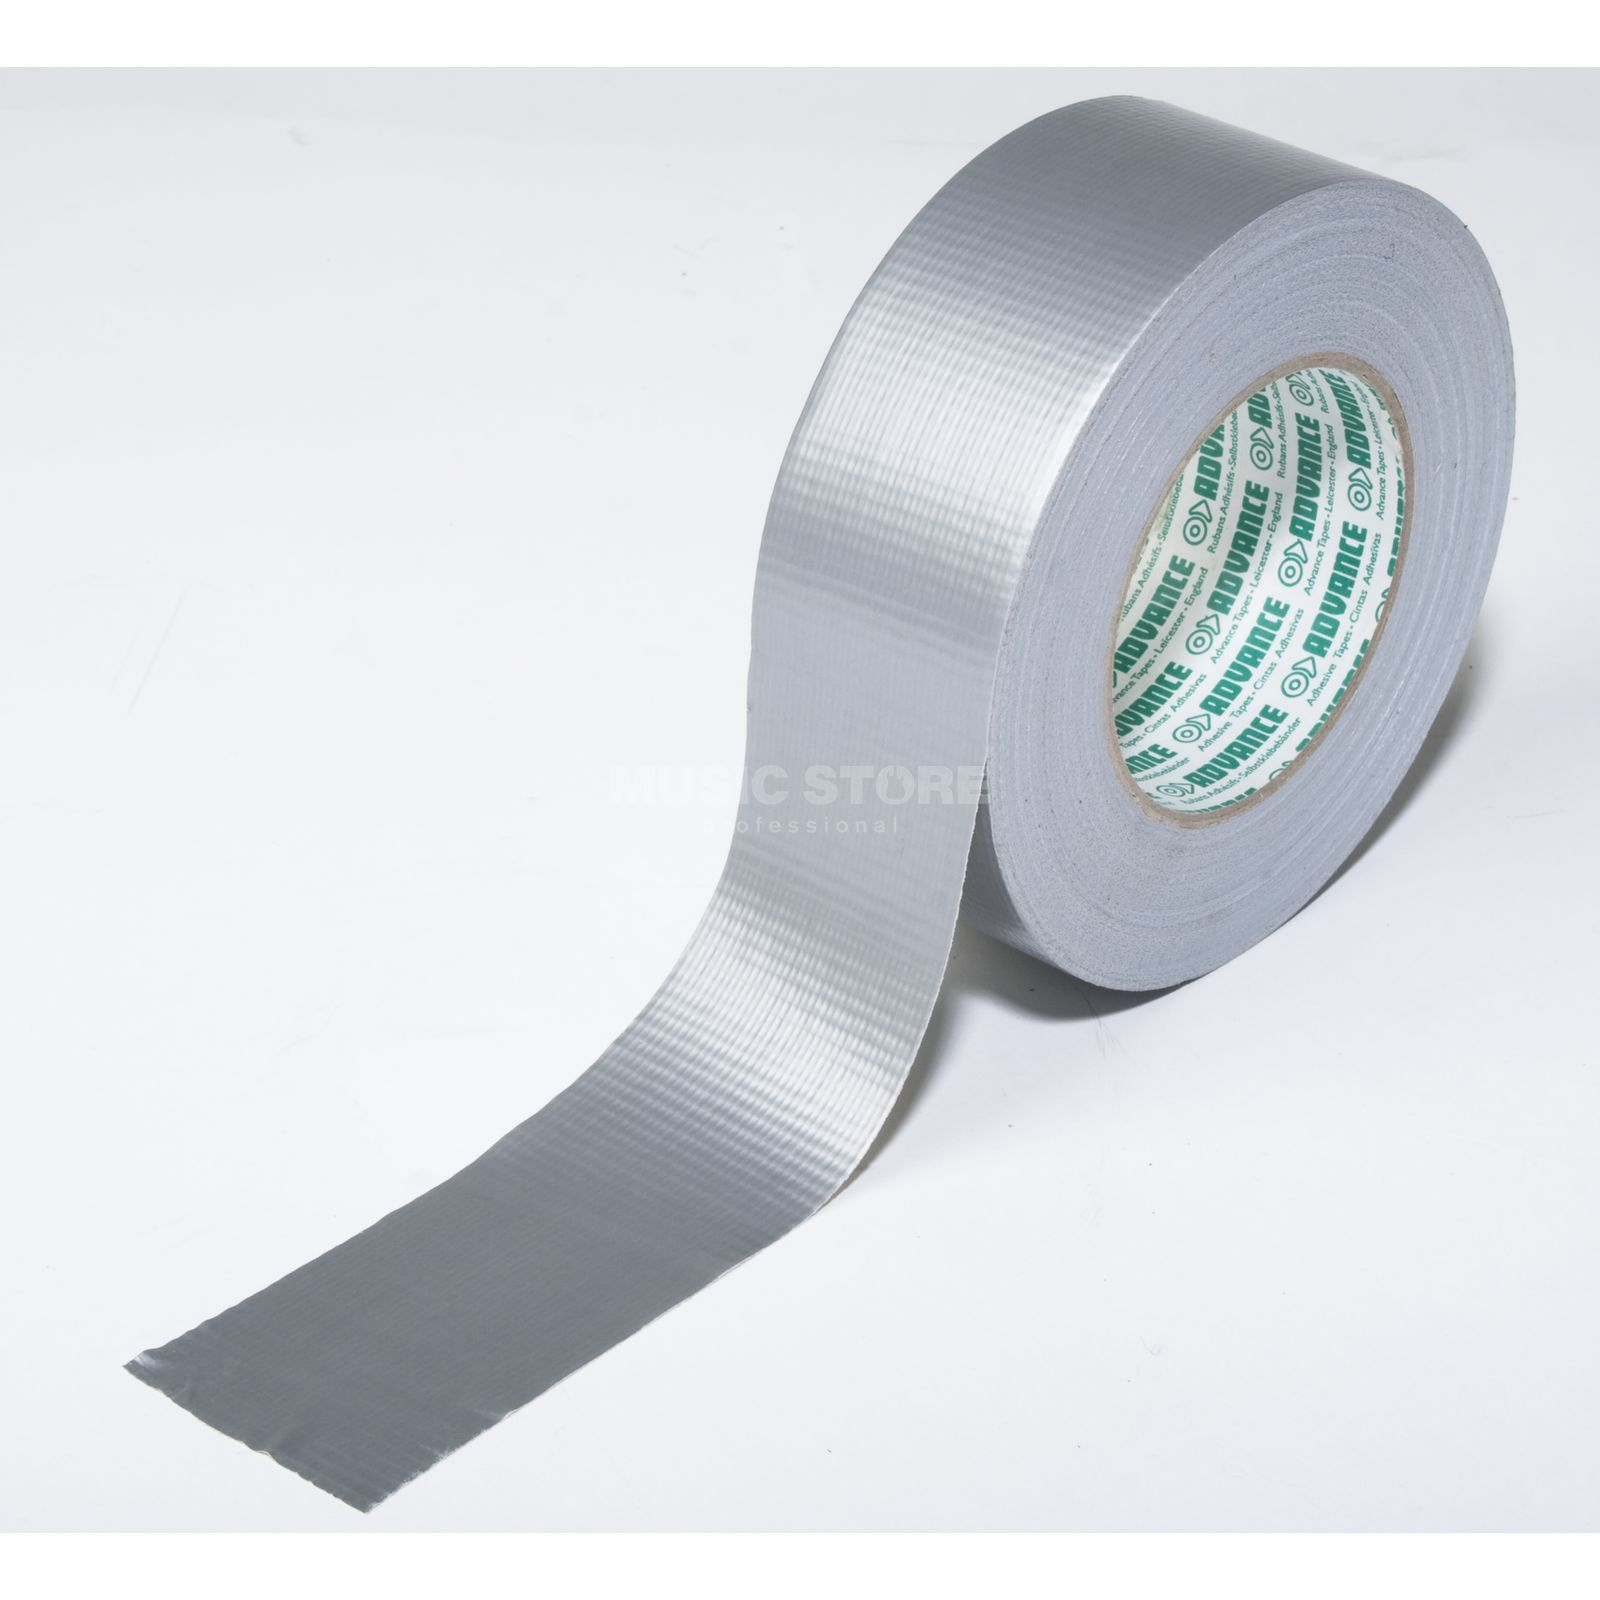 Advance AT165 Gaffa Tape, zilver 50 m lang, 50 mm breed Productafbeelding